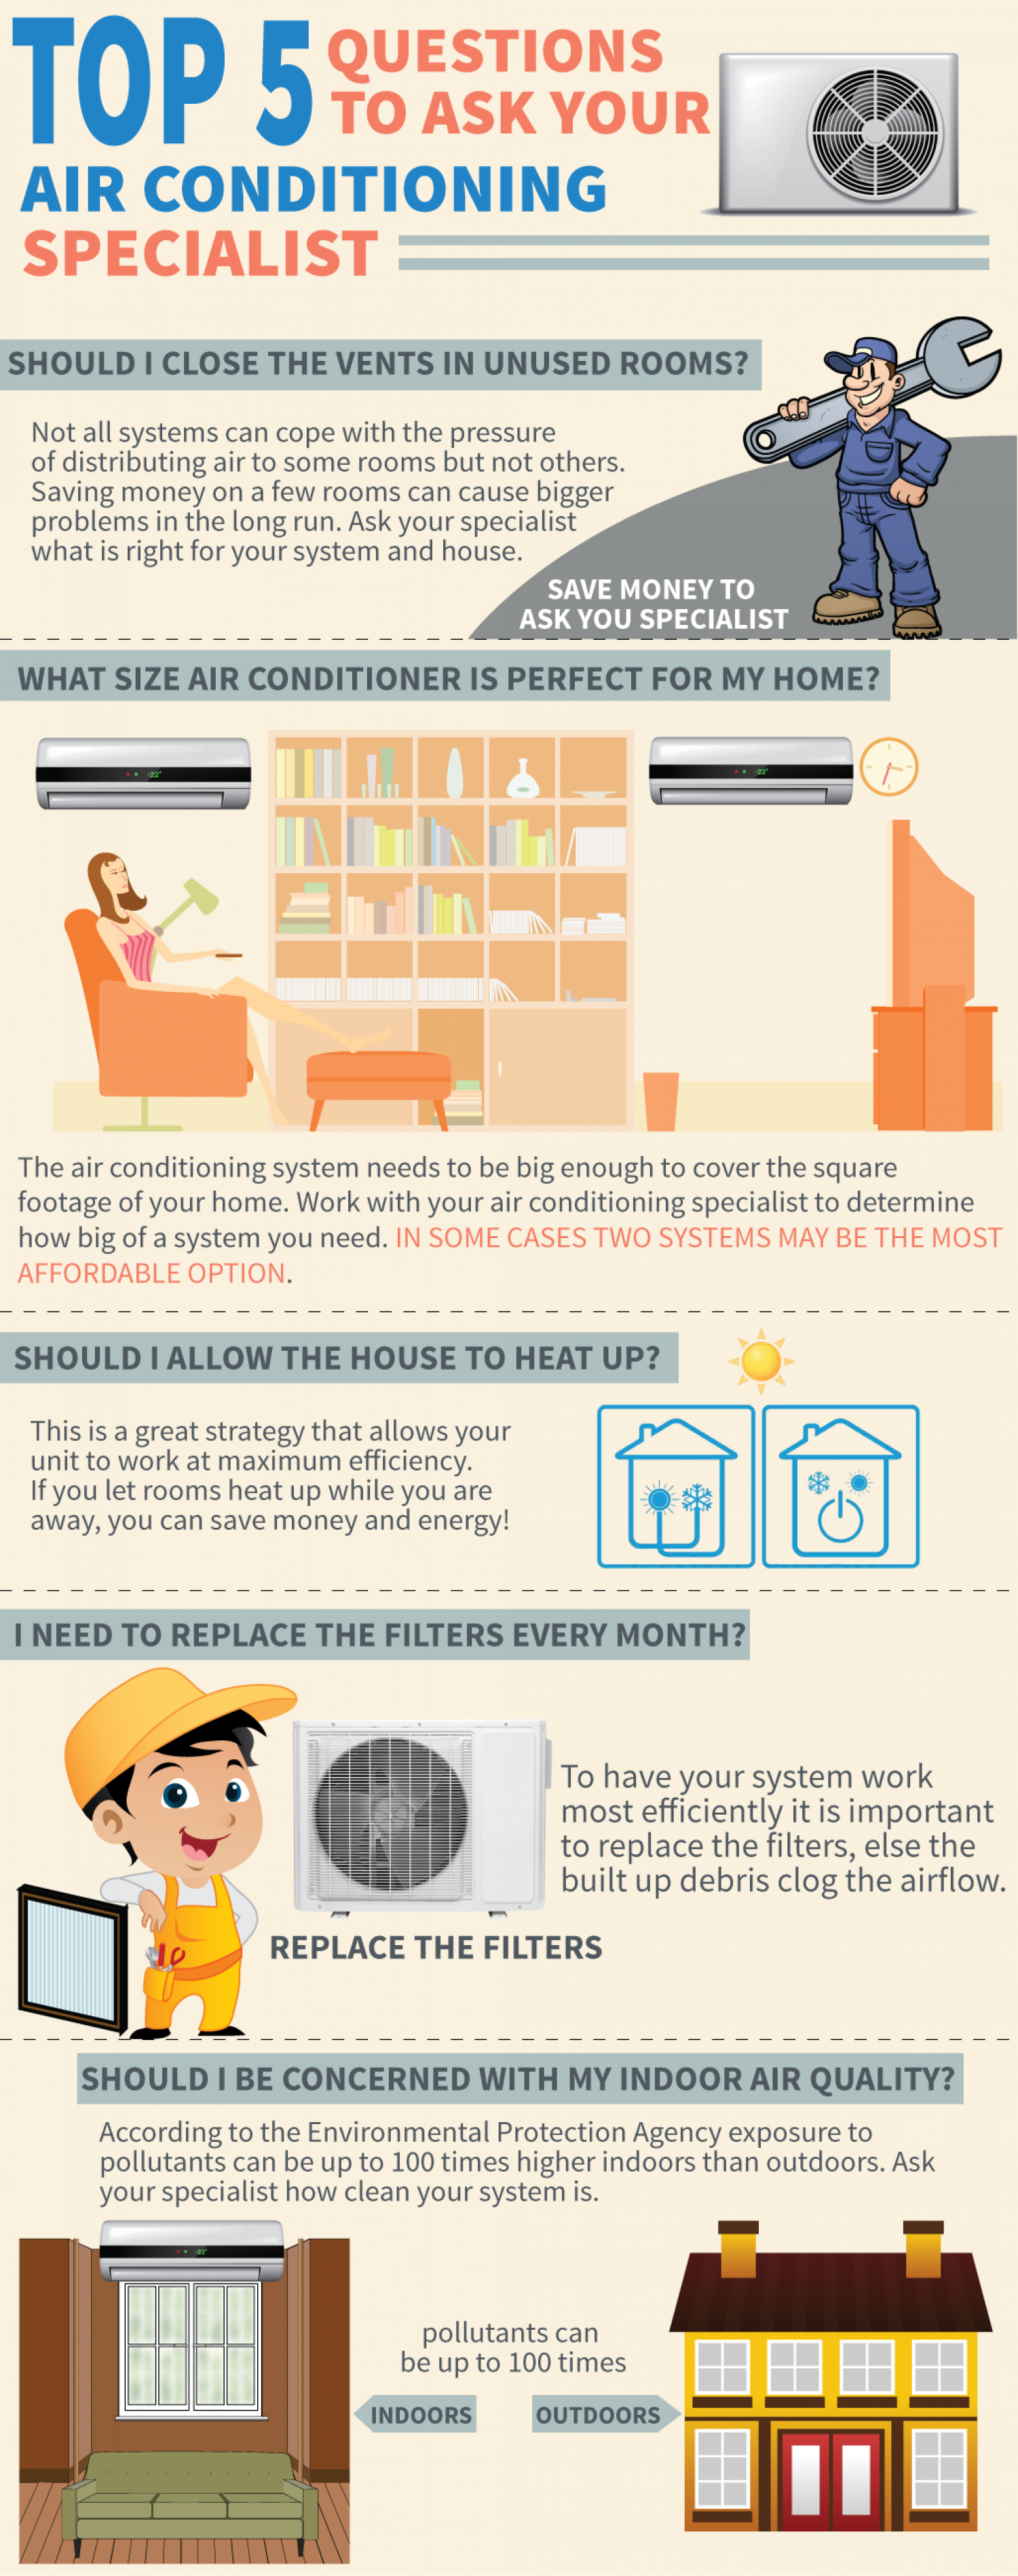 Top 5 Questions to ask your Air Conditioning Specialist Infographic